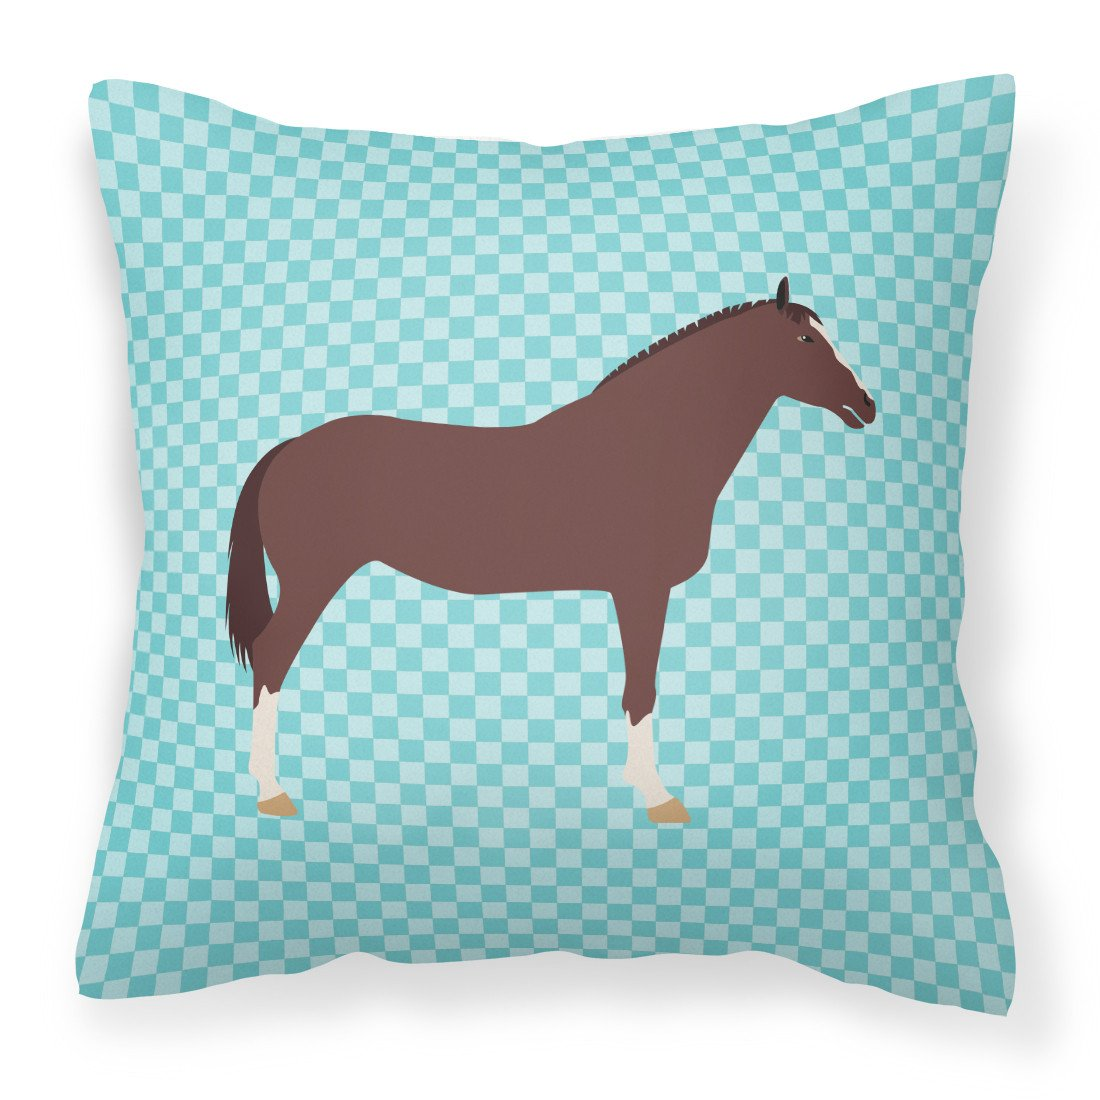 English Thoroughbred Horse Blue Check Fabric Decorative Pillow BB8087PW1818 by Caroline's Treasures